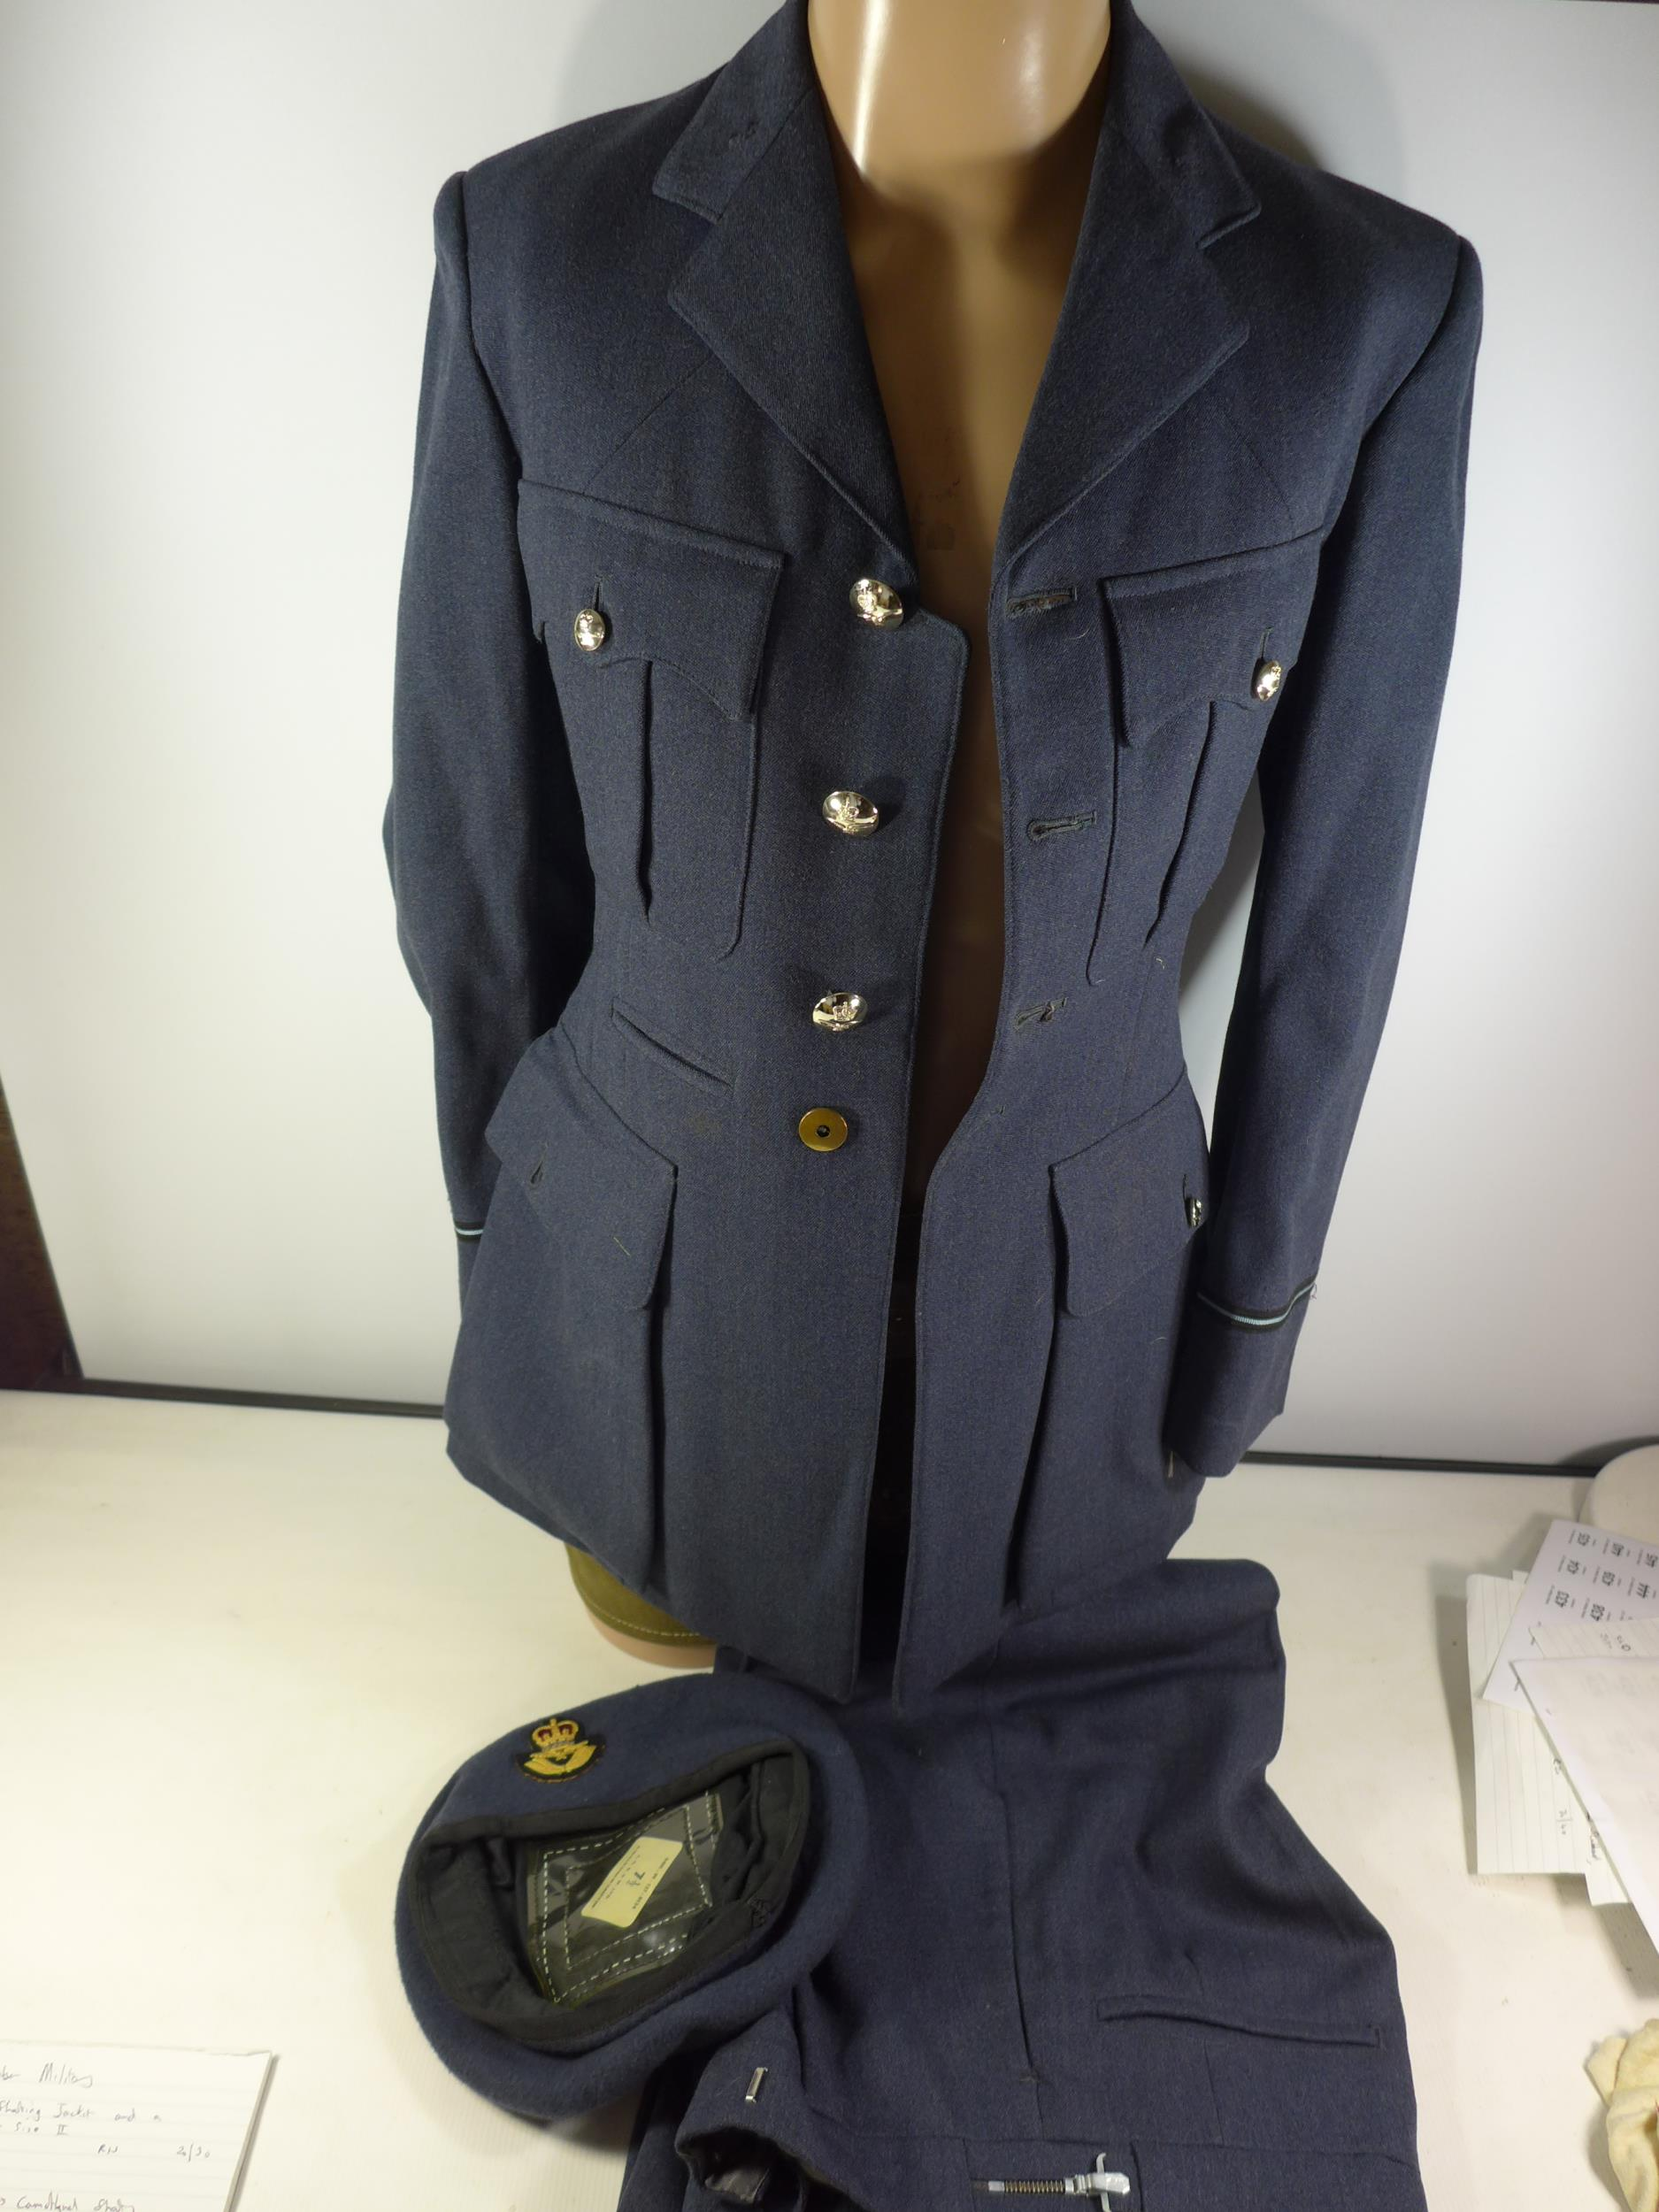 A RAF UNIFORM COMPRISING OF JACKET, TROUSERS AND BERET, SIZE 7 1/2